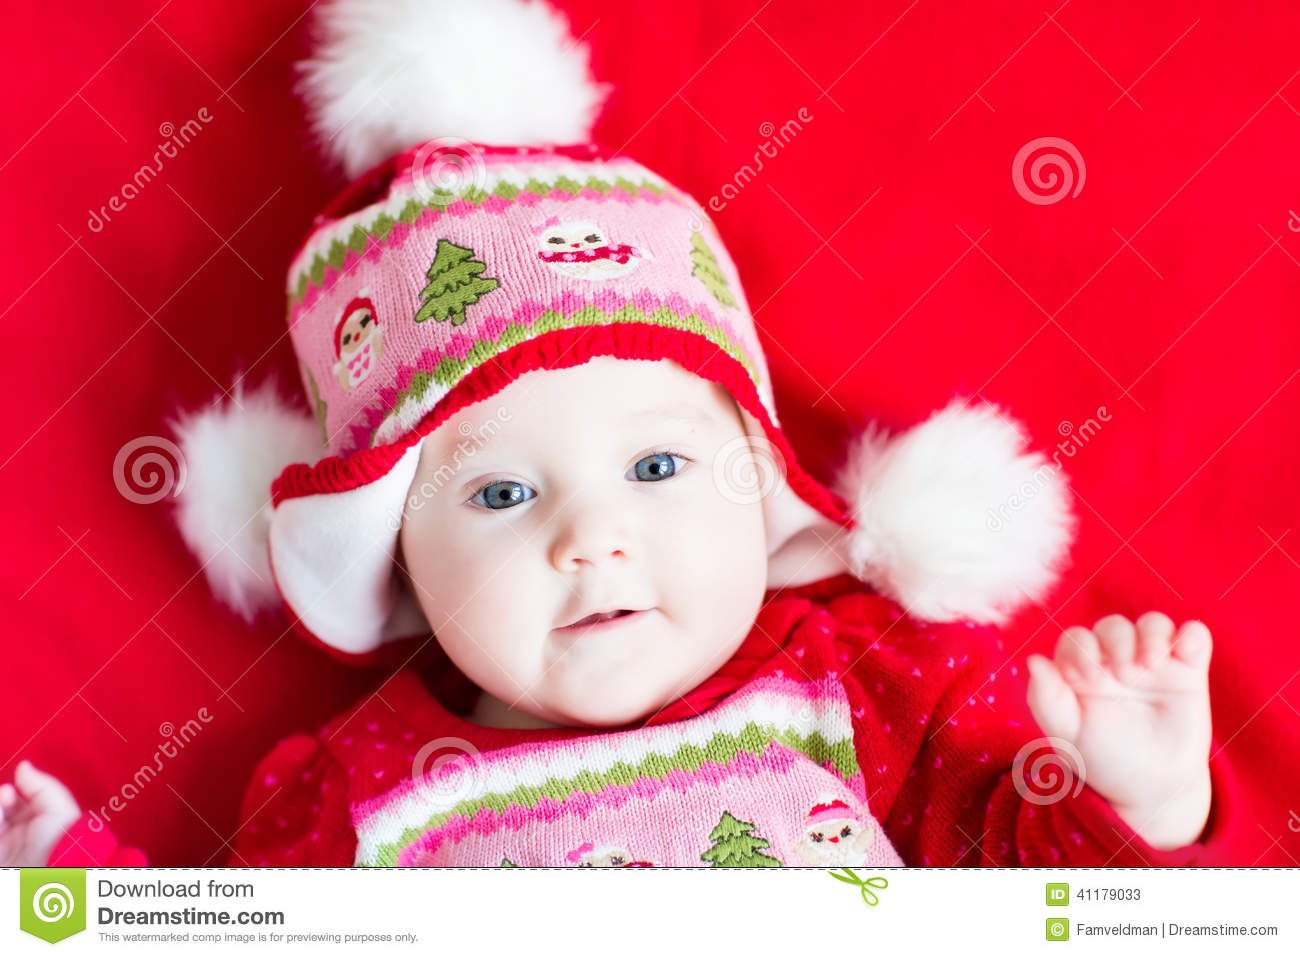 Sweet Baby Girl In A Christmas Knitted Dress And Hat Stock ...